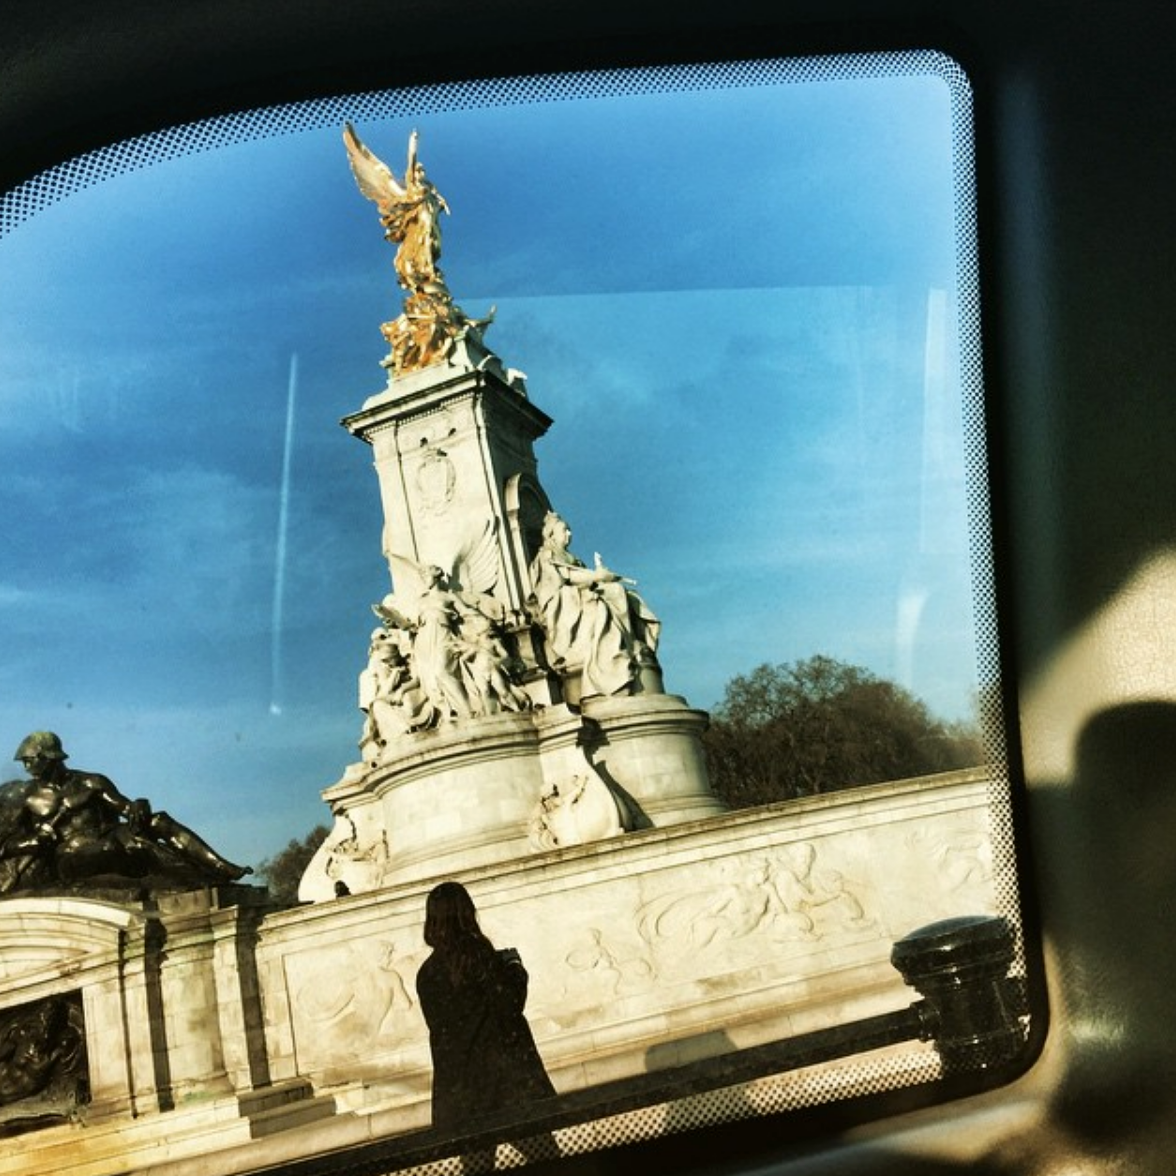 Passing Buckingham Palace on my way out of London in 2015.